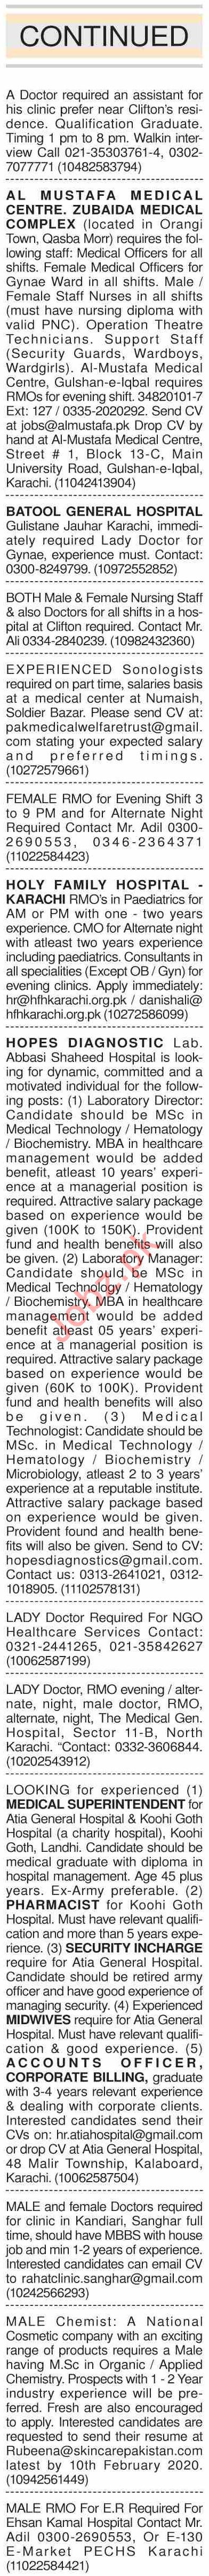 Dawn Sunday Classified Ads 2nd Feb 2020 for Medical Staff